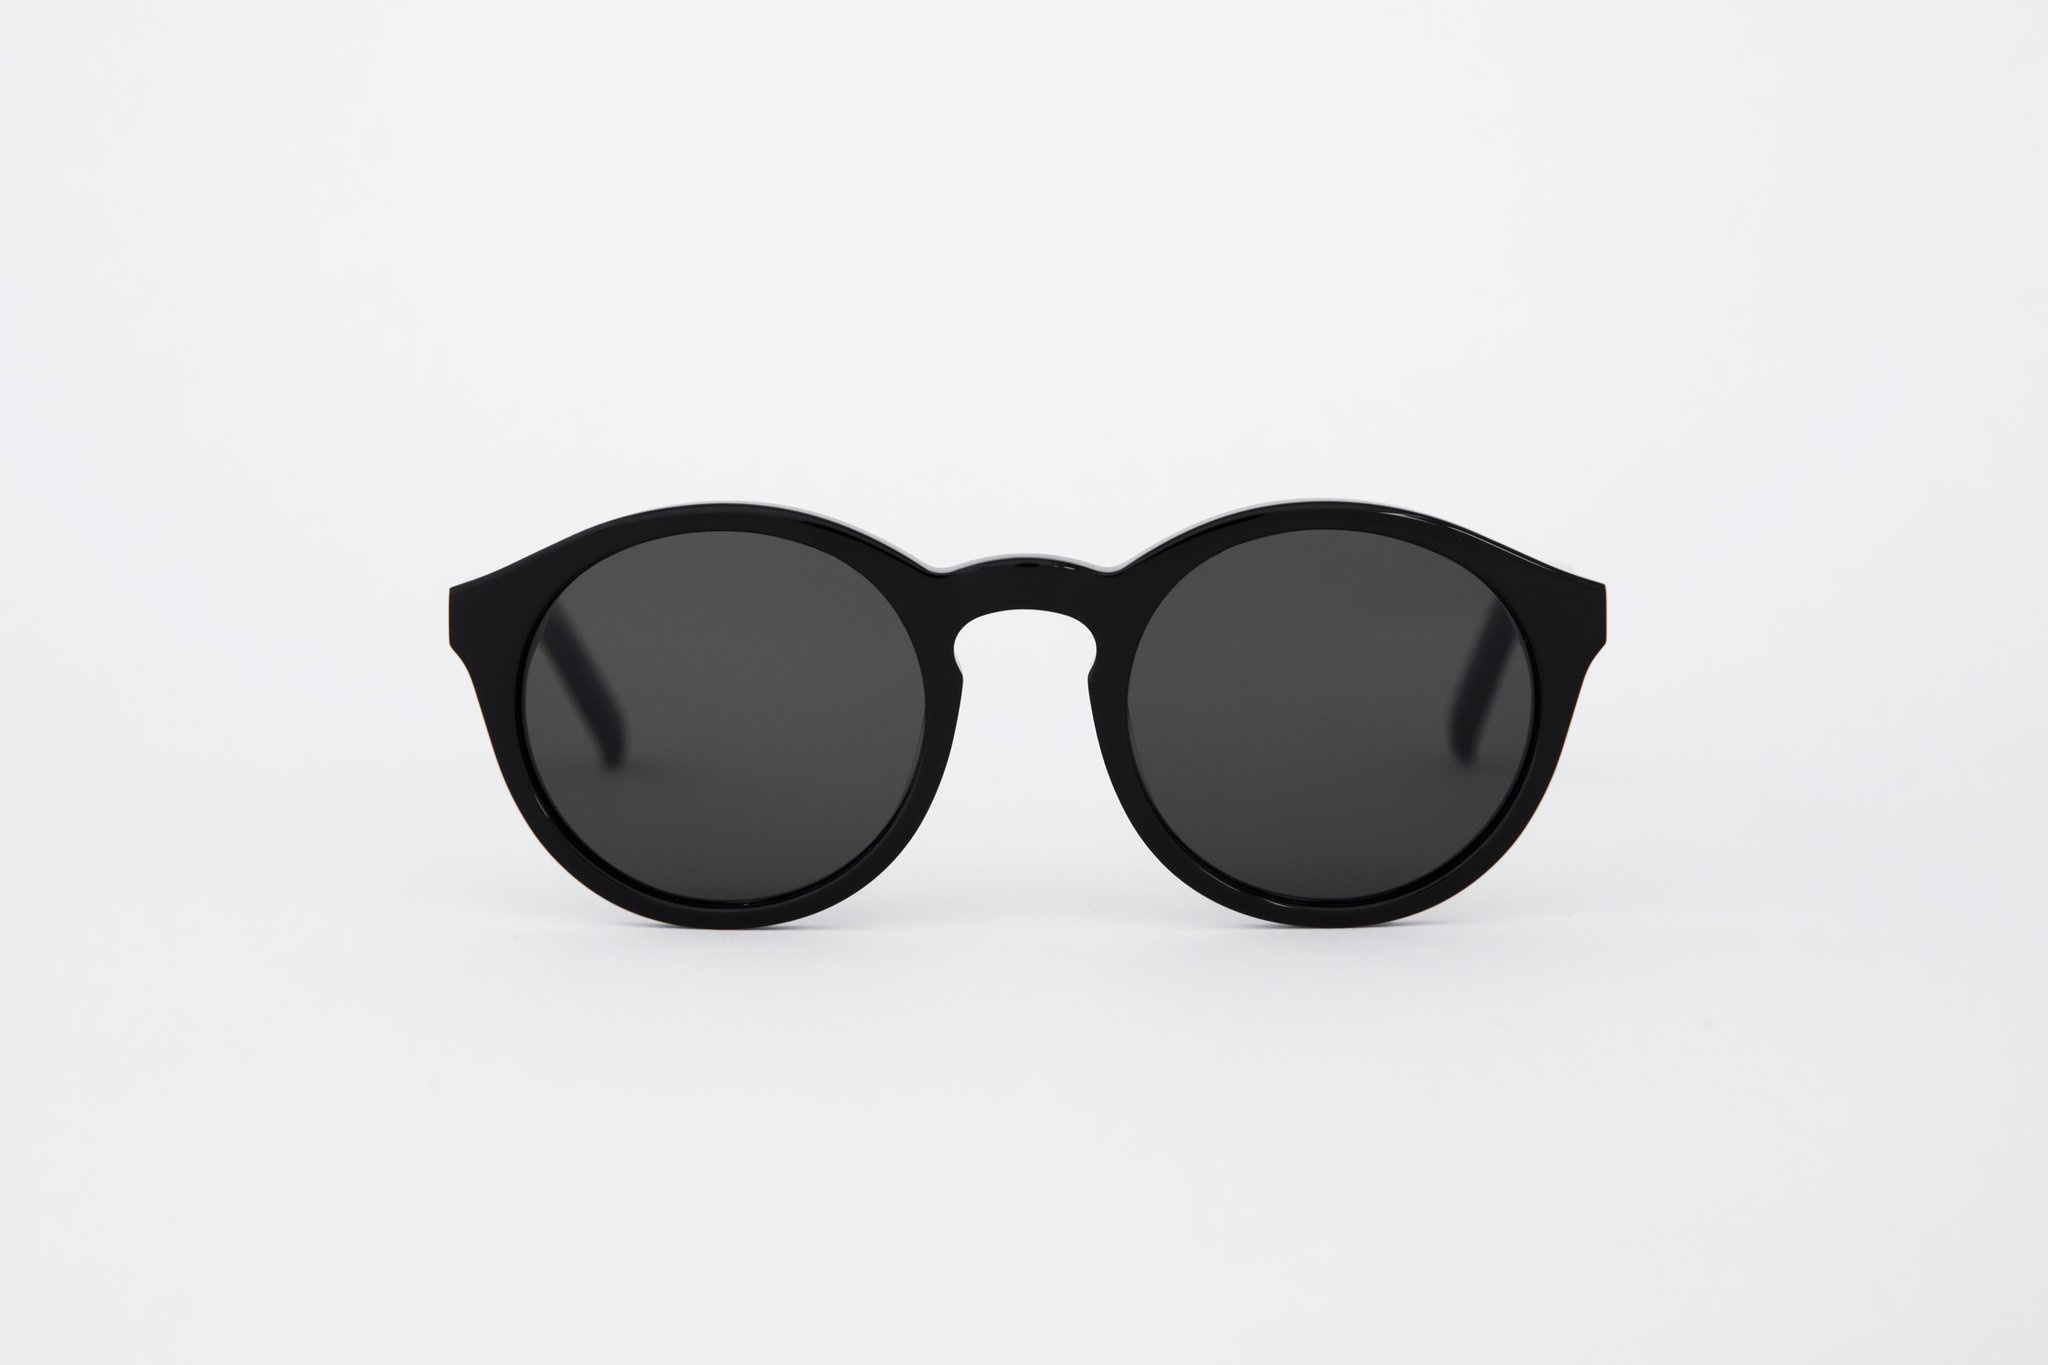 Barstow Black Grey Solid Lens Sunglasses-1